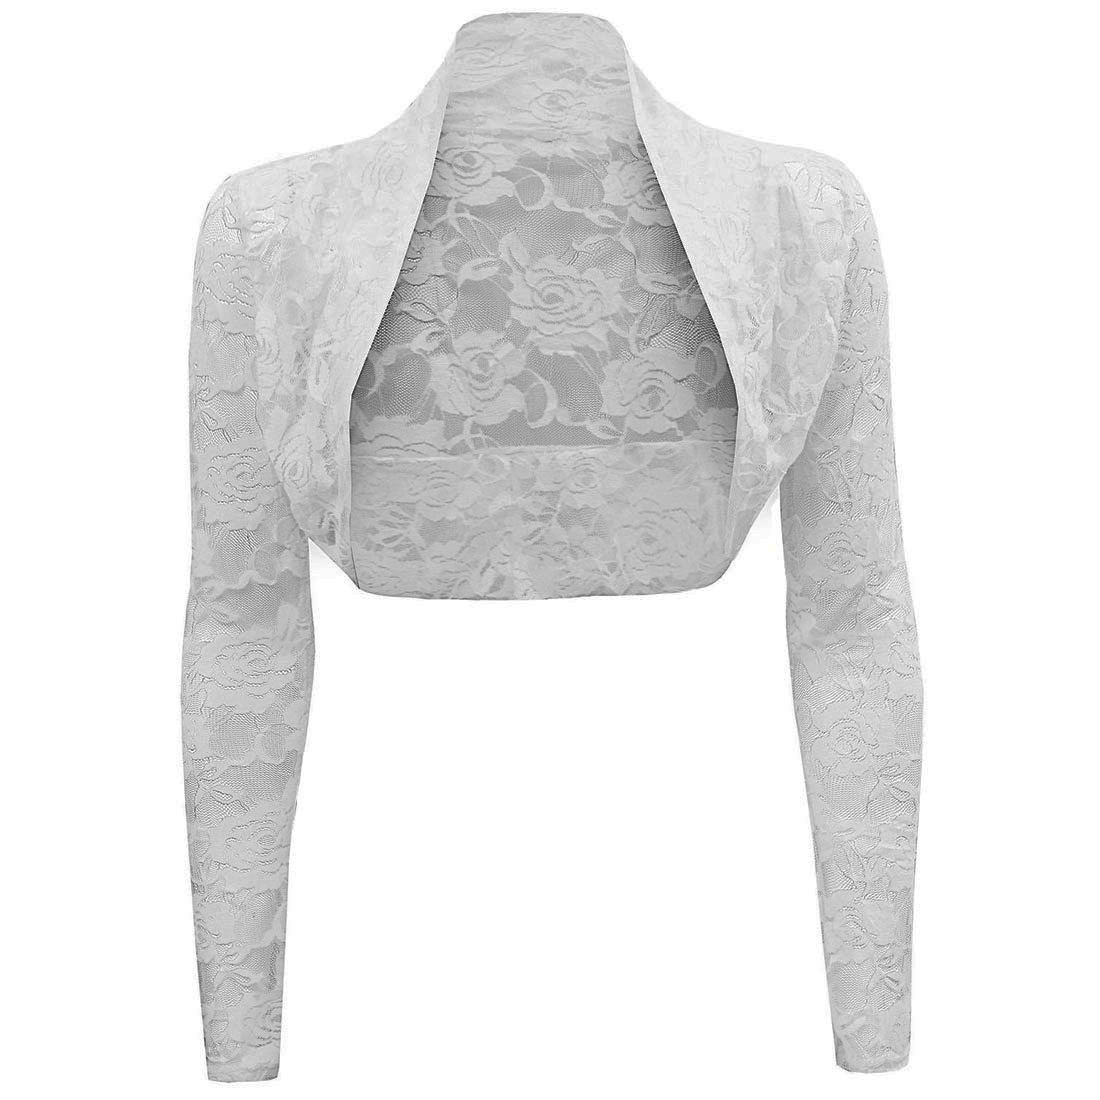 Womens Sheer Lace Shrug Bolero Long Sleeve Cropped Cardigan Top ...